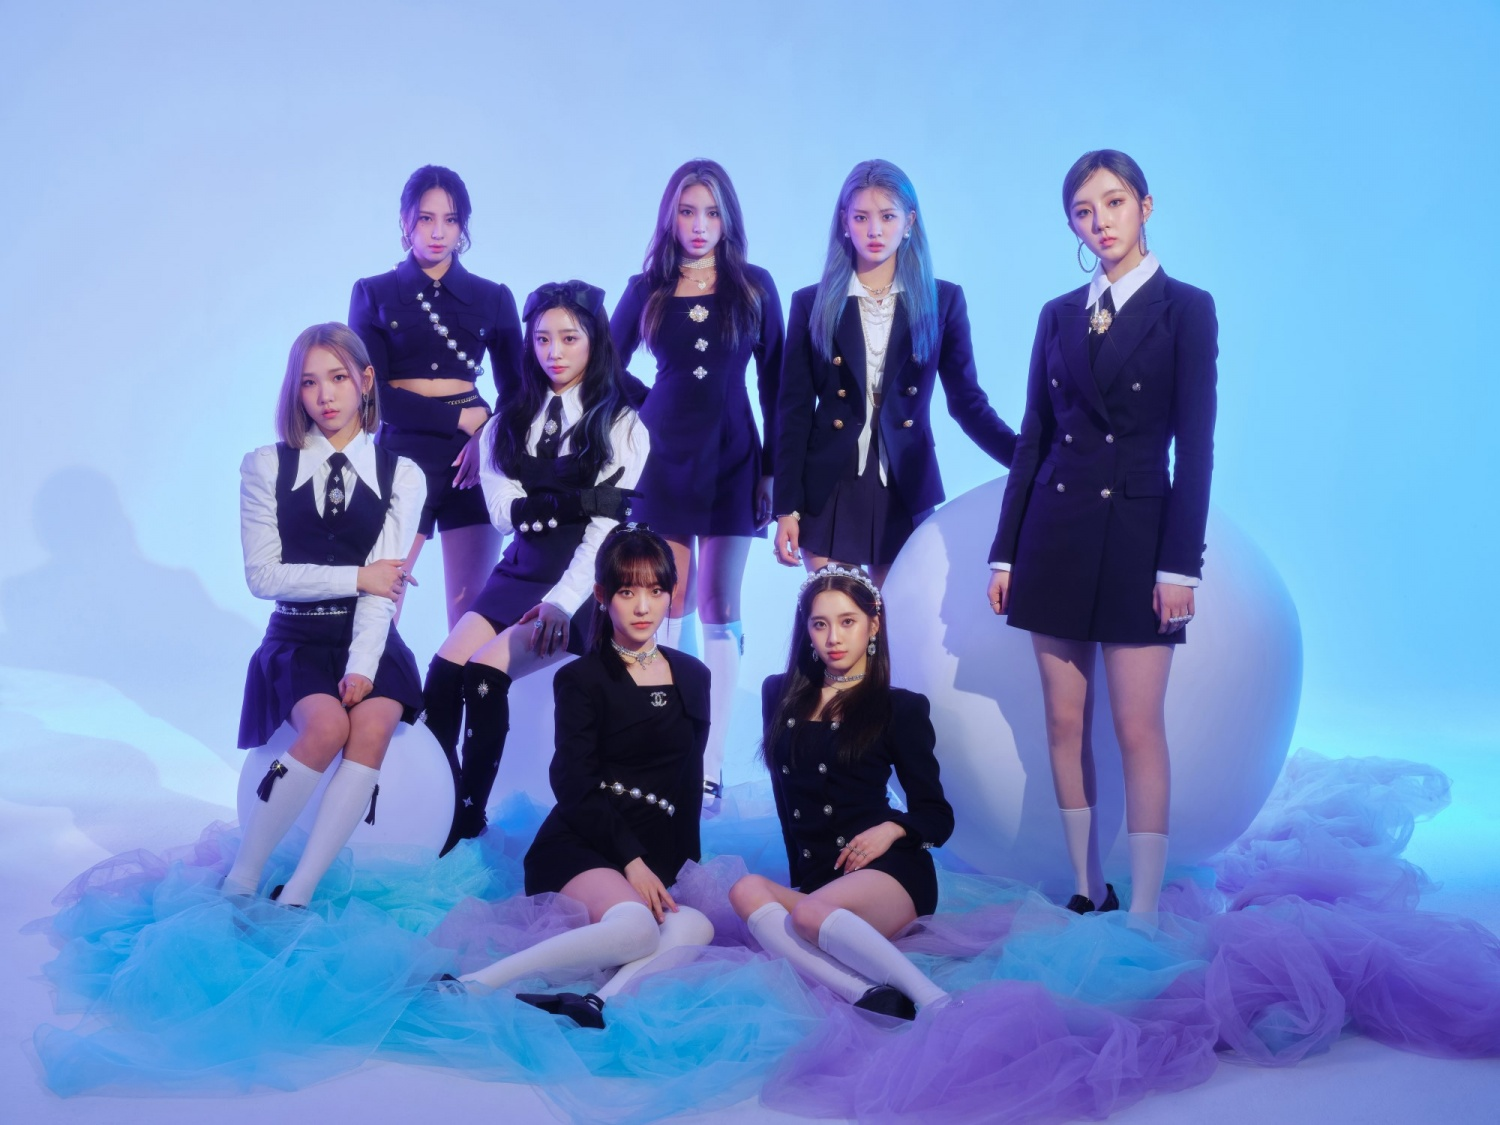 New Girl Group LIGHTSUM Joins UNIVERSE + K-Pop Group To Produce More Content And Host Global Fan Events